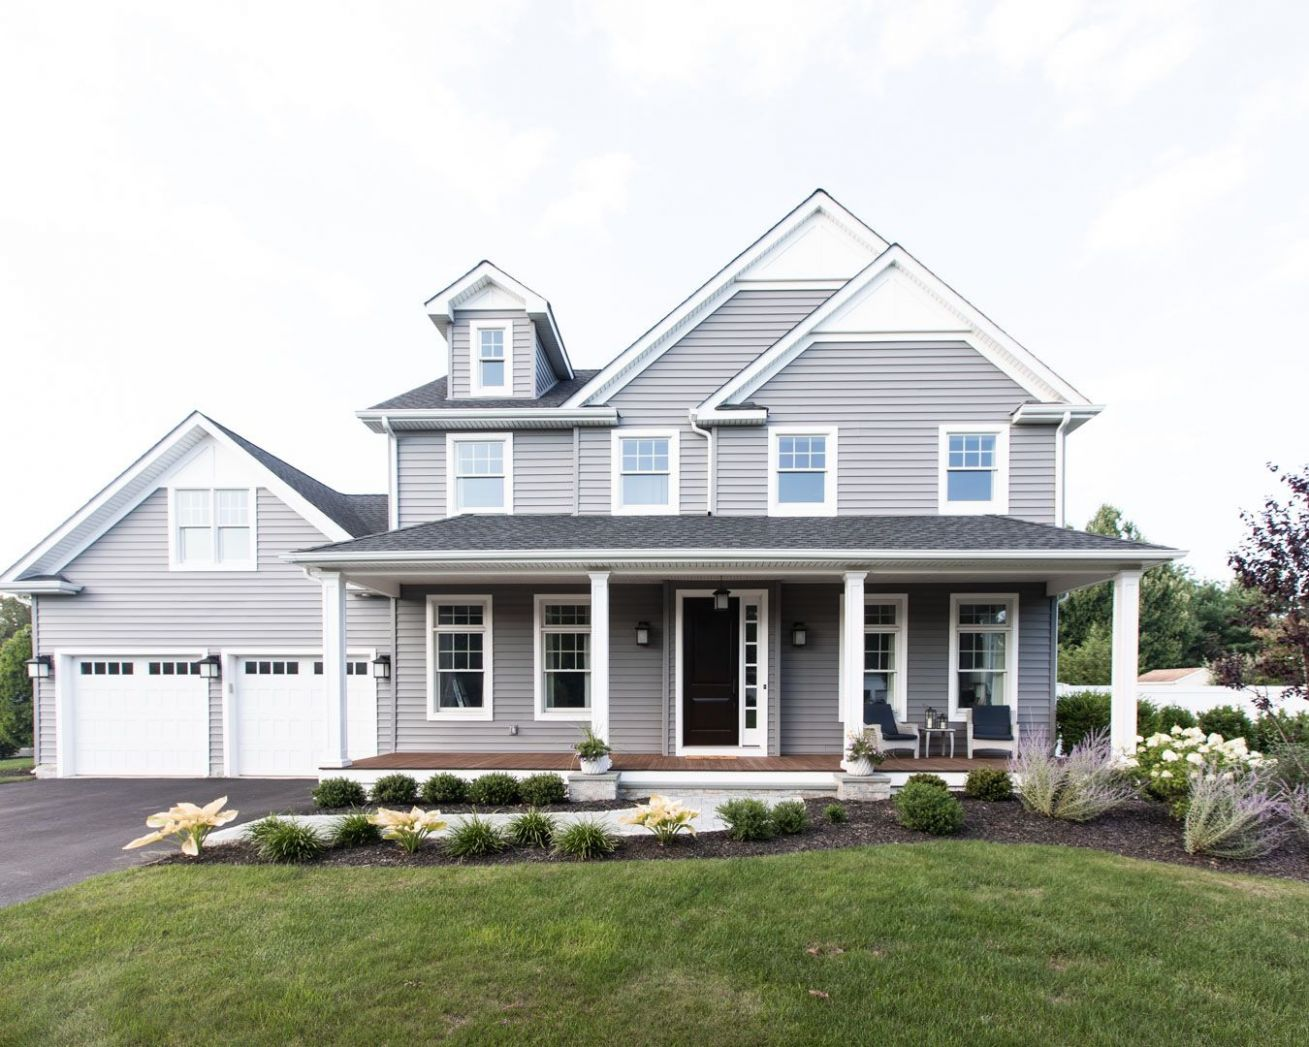 Home Exterior Inspiration (With images)   House exterior, Gray ...